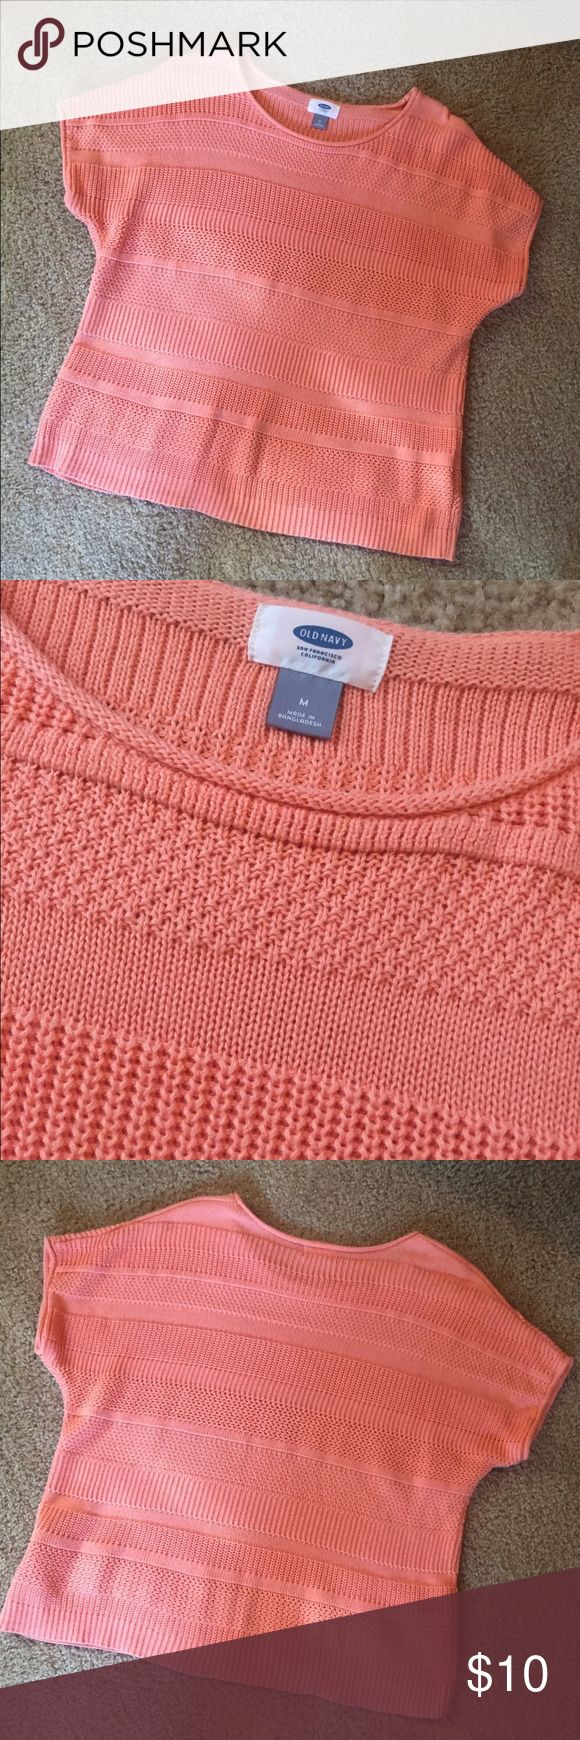 Old Navy Sweater Cute peach/coral sweater! Has an oversized, slouchy fit that is really comfortable! Worn once. Old Navy Sweaters